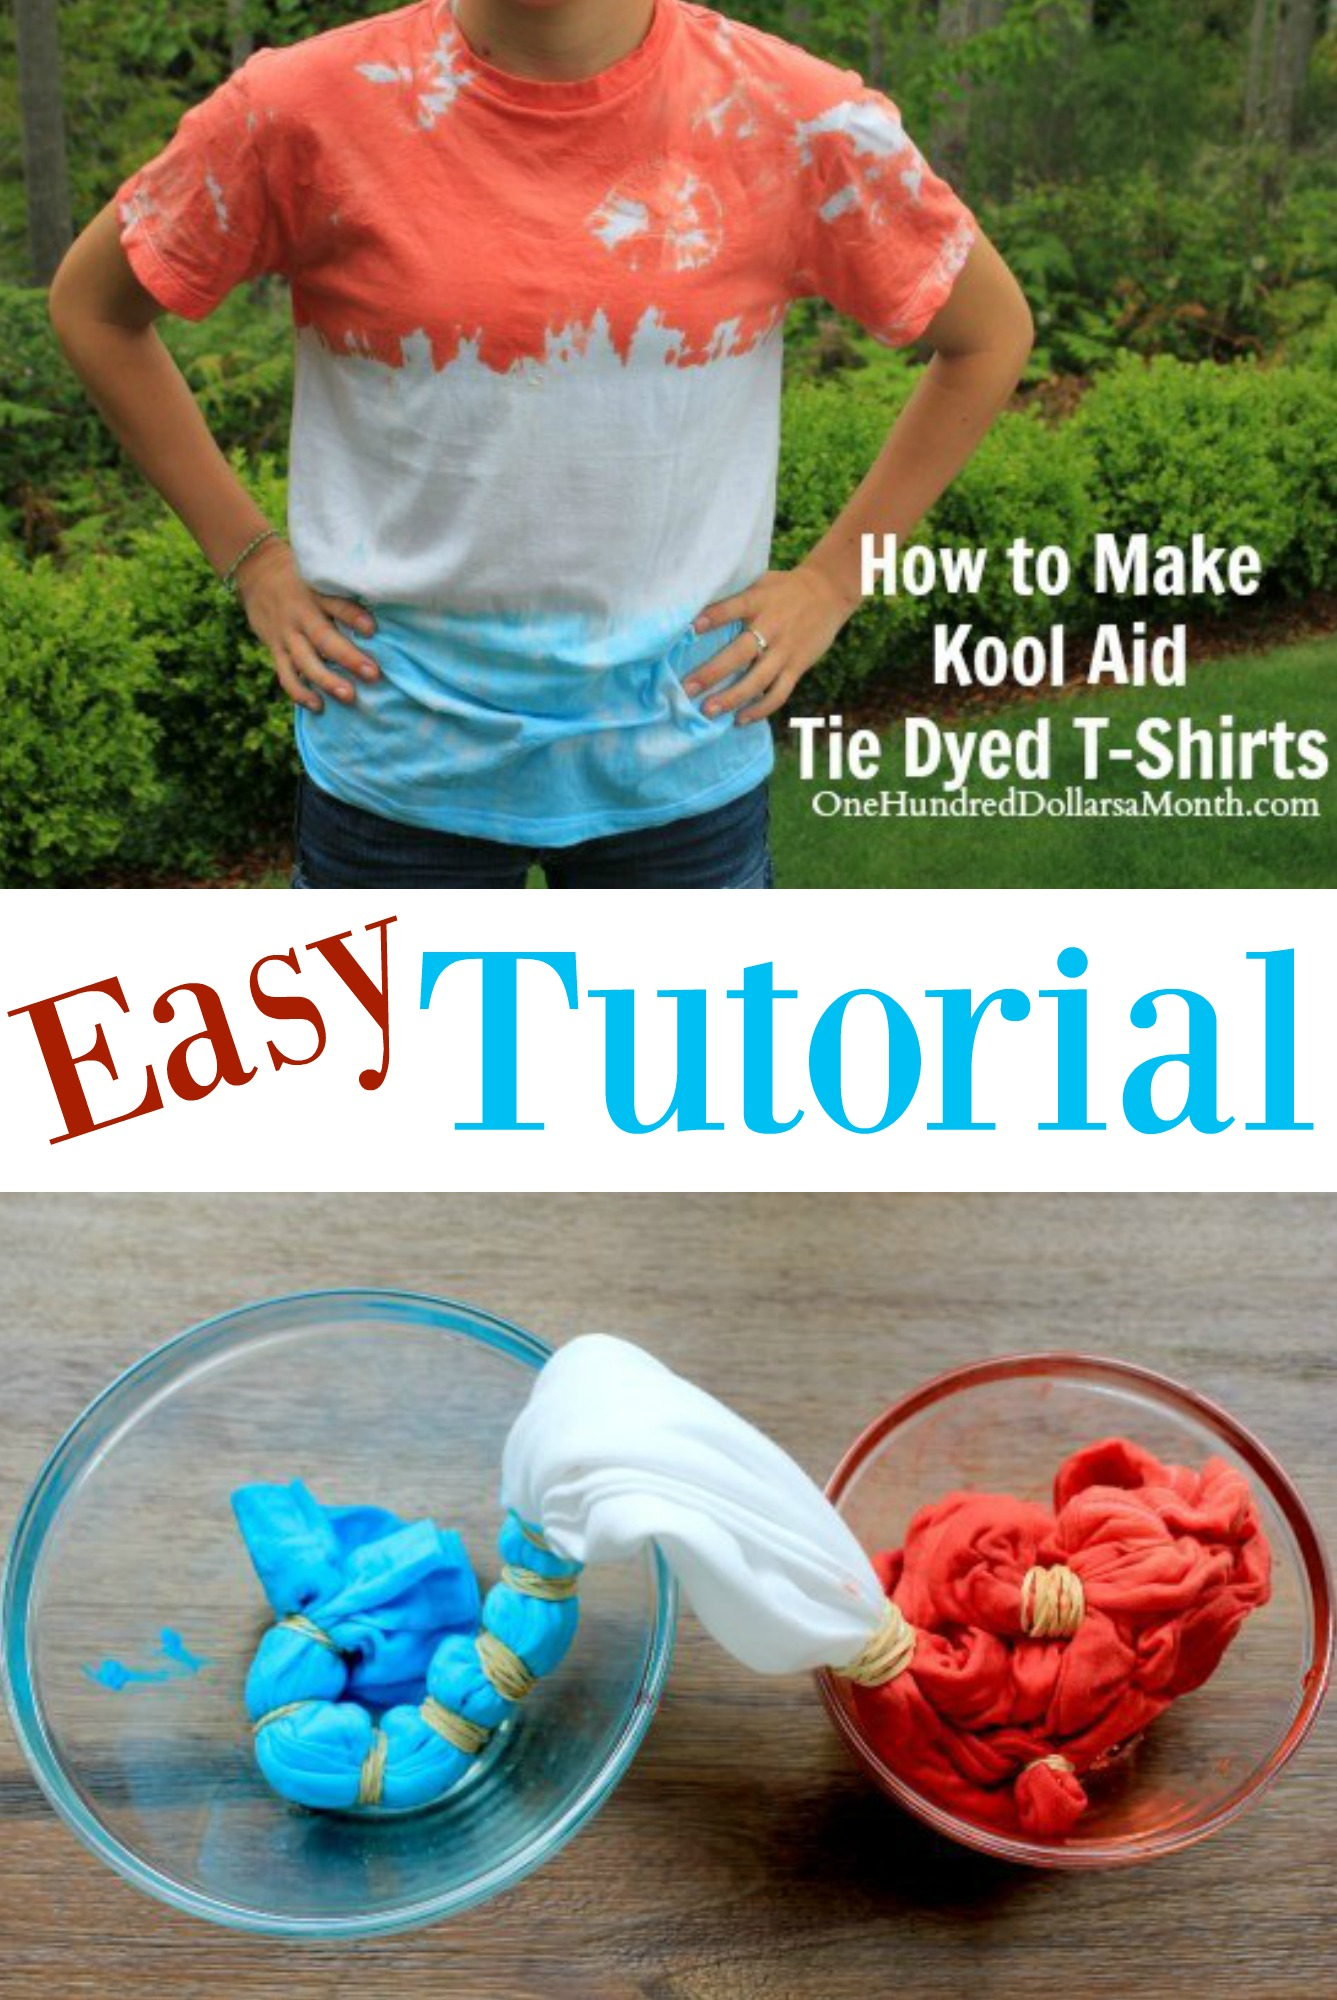 How To Make Kool Aid Tie Dyed T Shirts One Hundred Dollars